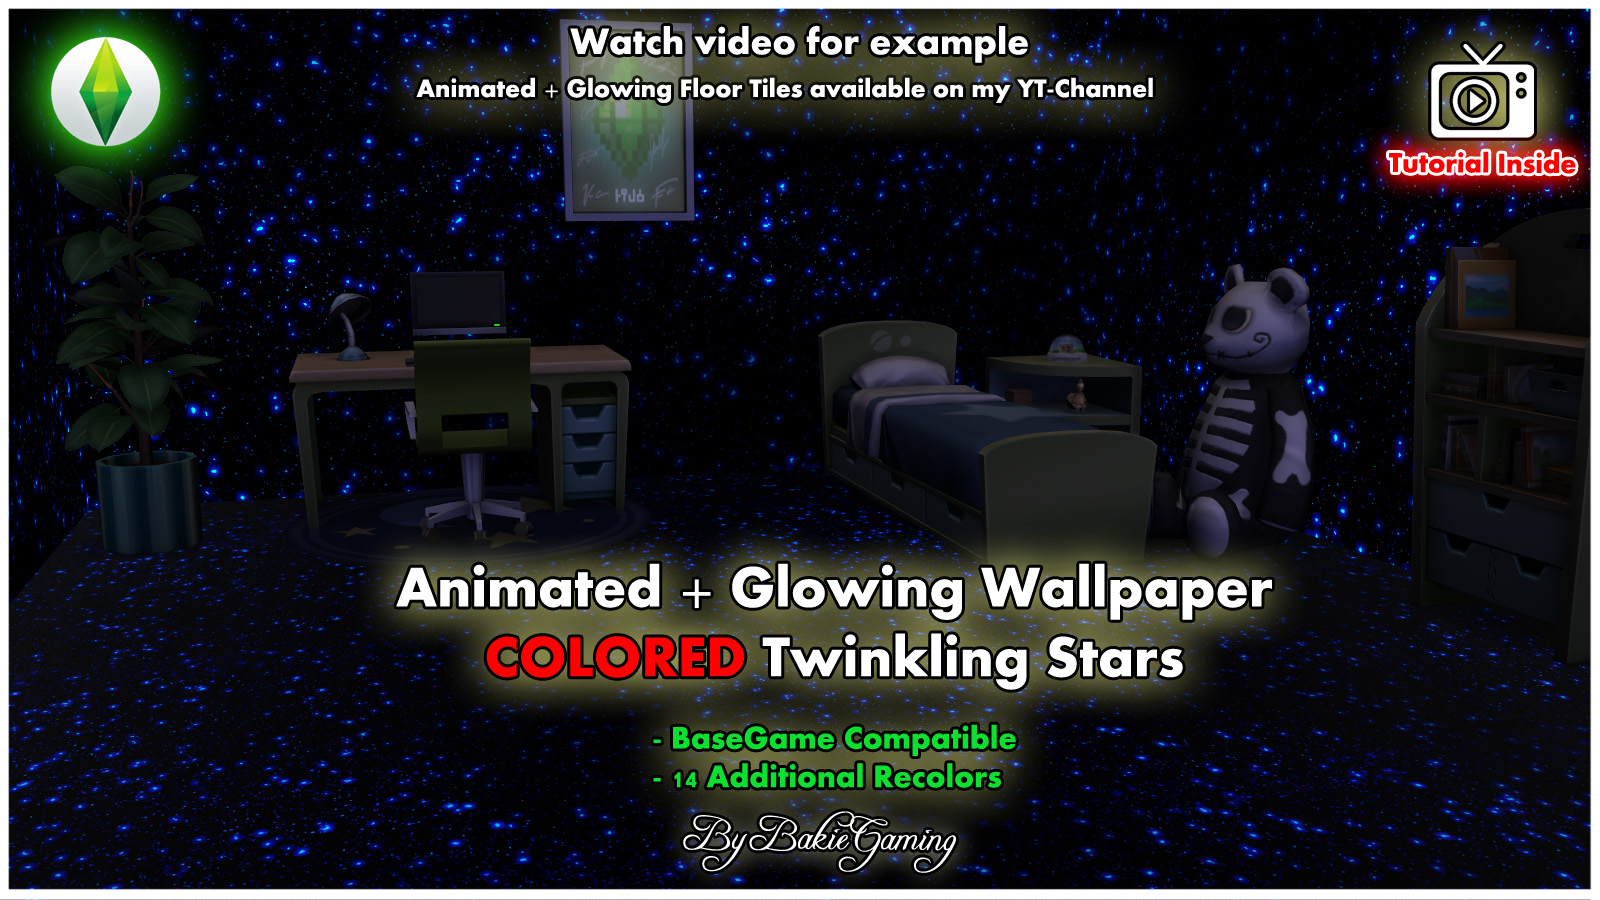 Animated Wallpaper - Colored Twinkling Stars by Bakie